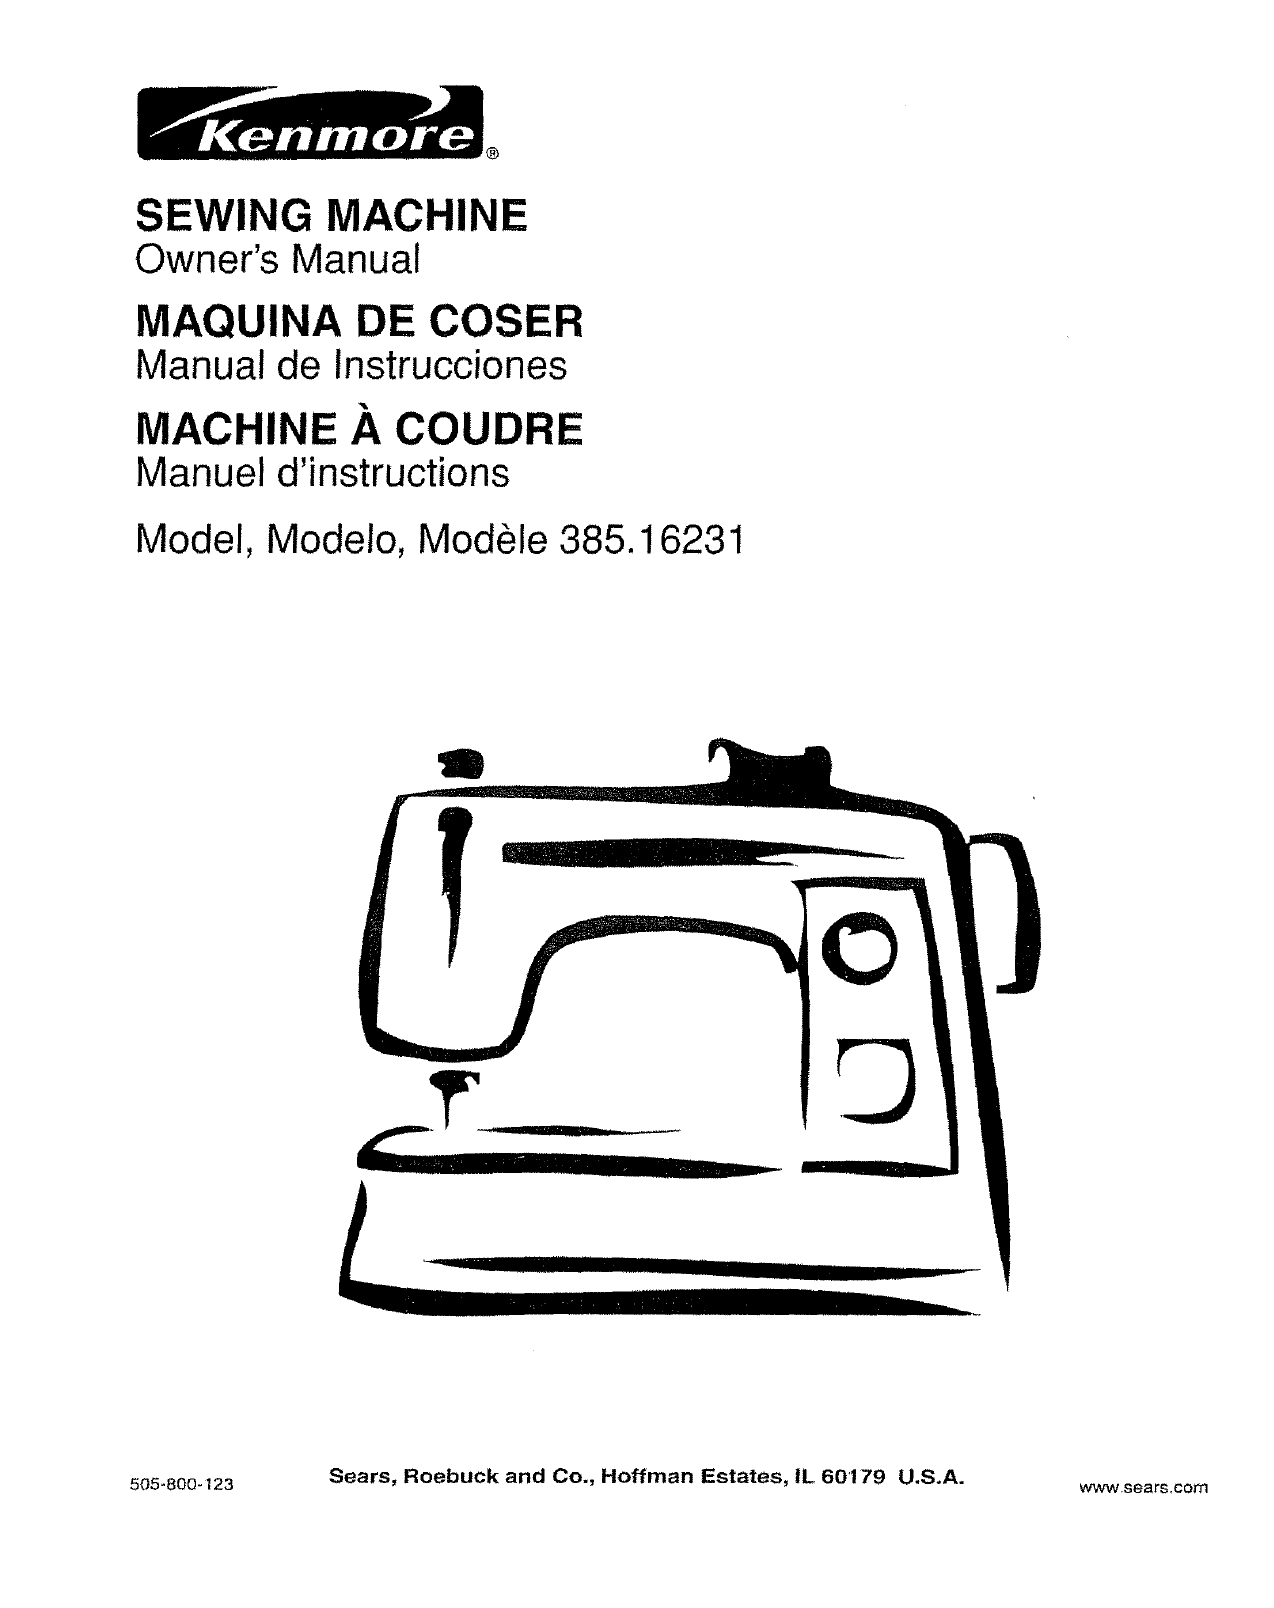 Kenmore Sewing Machine 38516231 User Guide Manualsonlinecom Chainsaw Parts Diagram On 80 Series Gas Dryer